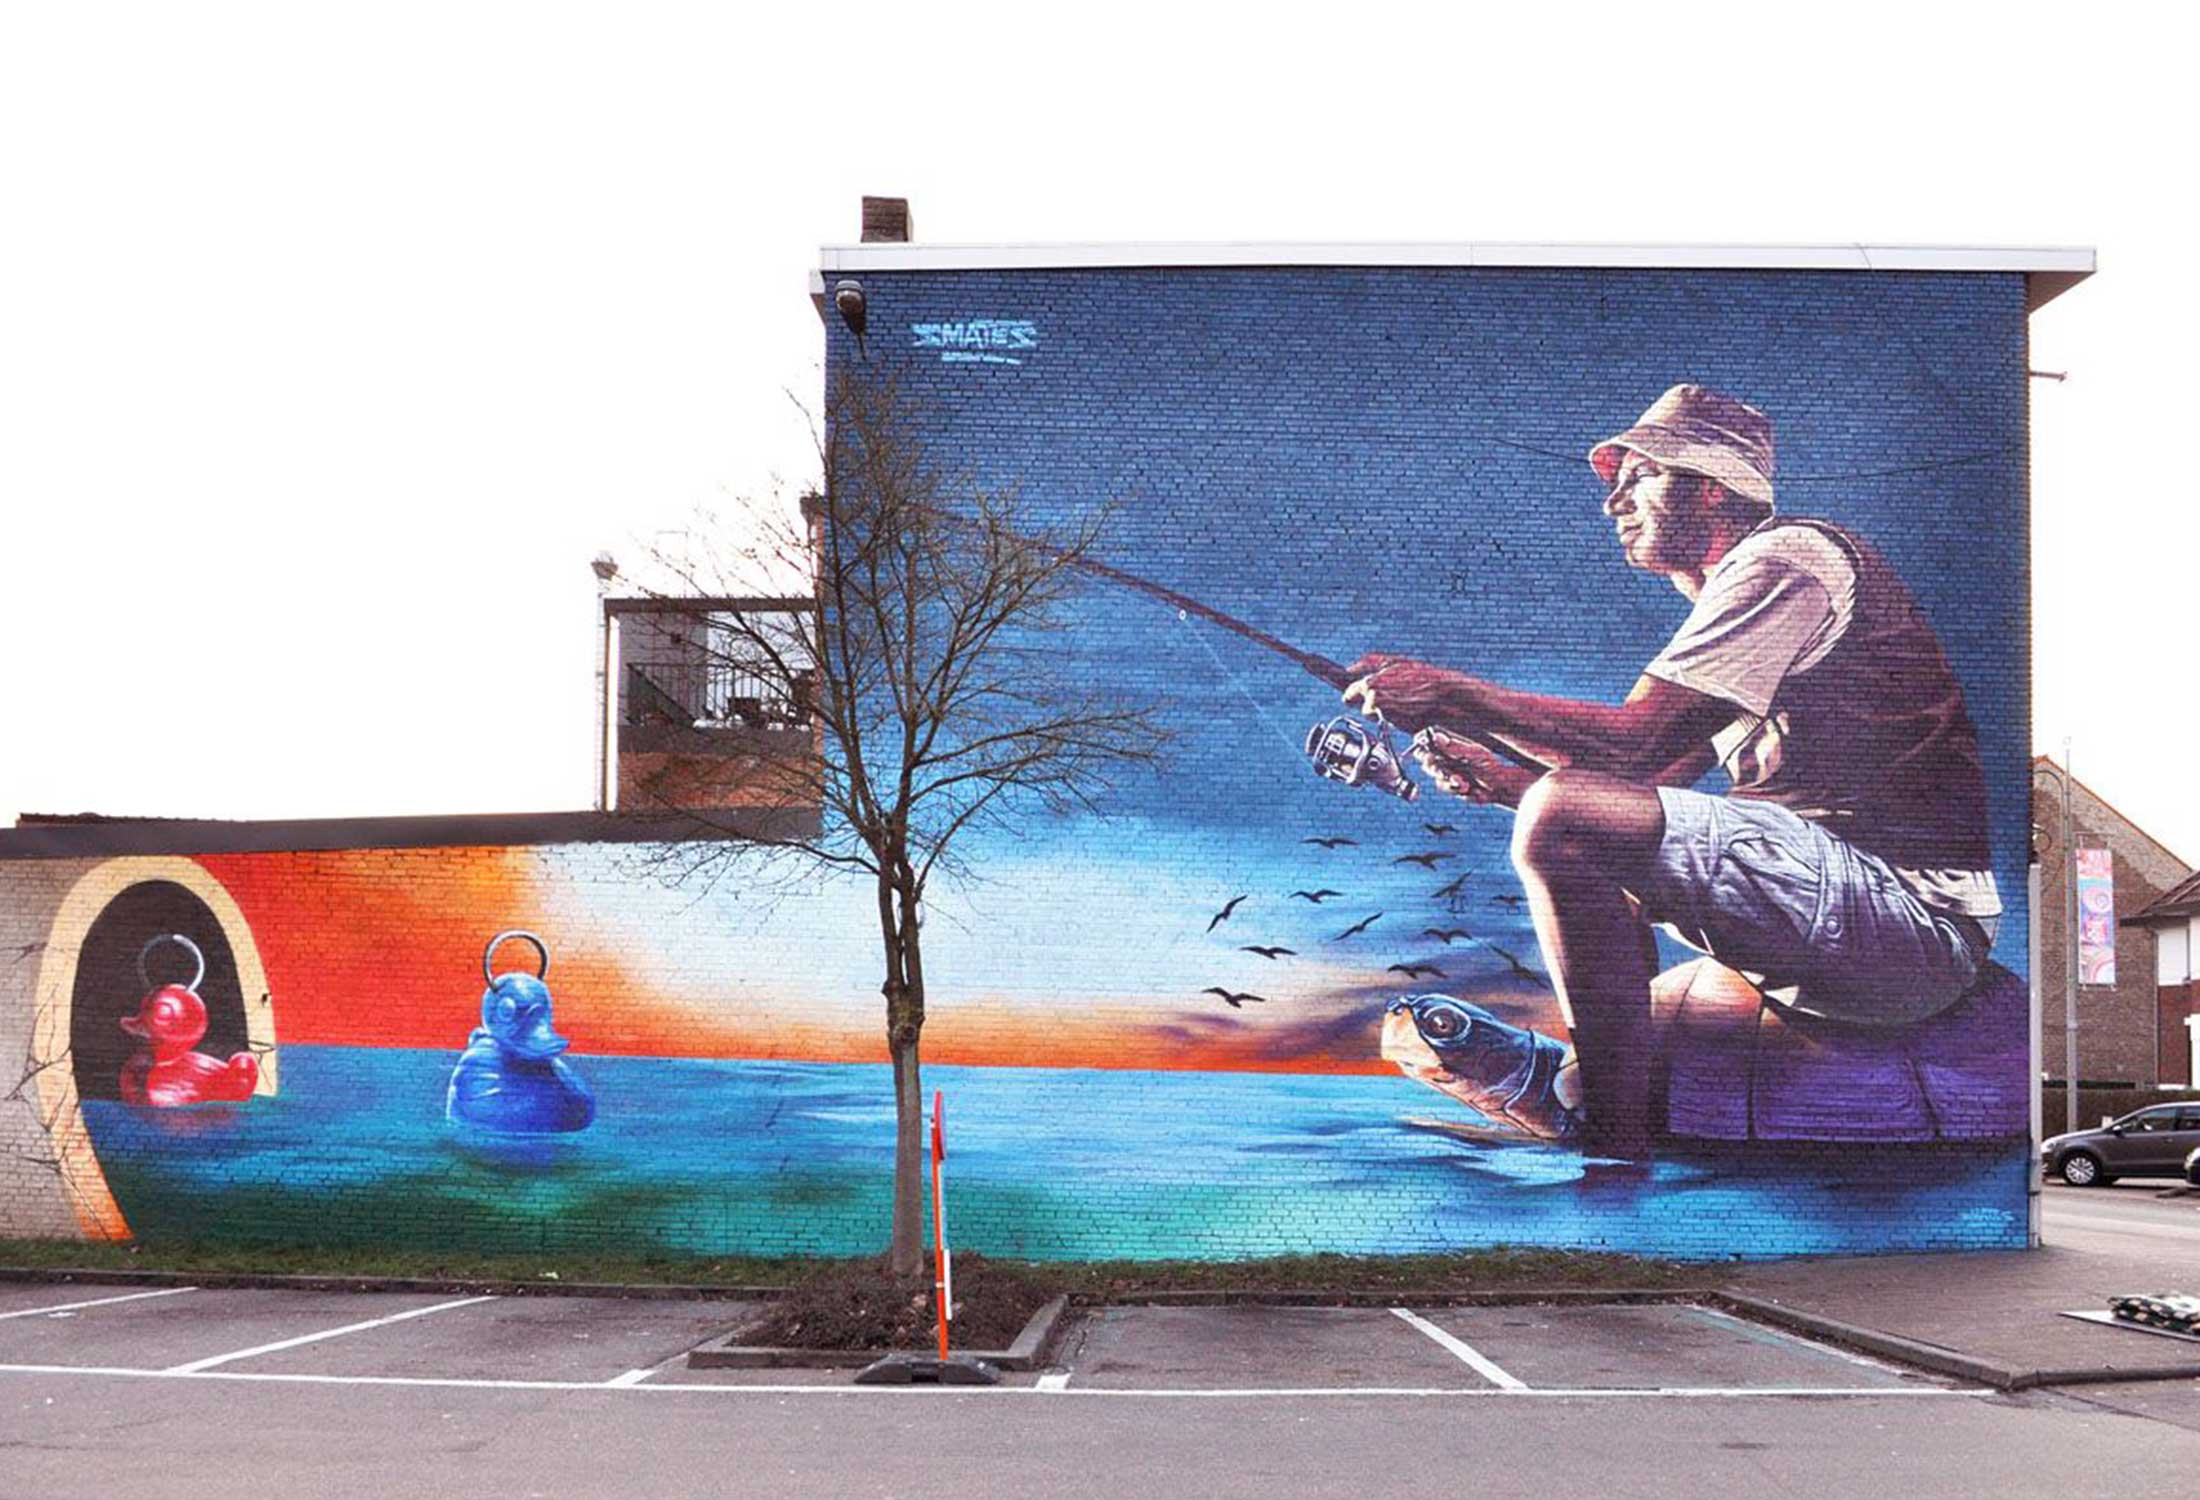 Dawn Fishing by Bart Smeets is a creative mural that transformed a boring brick wall into a beautiful piece of art in public places